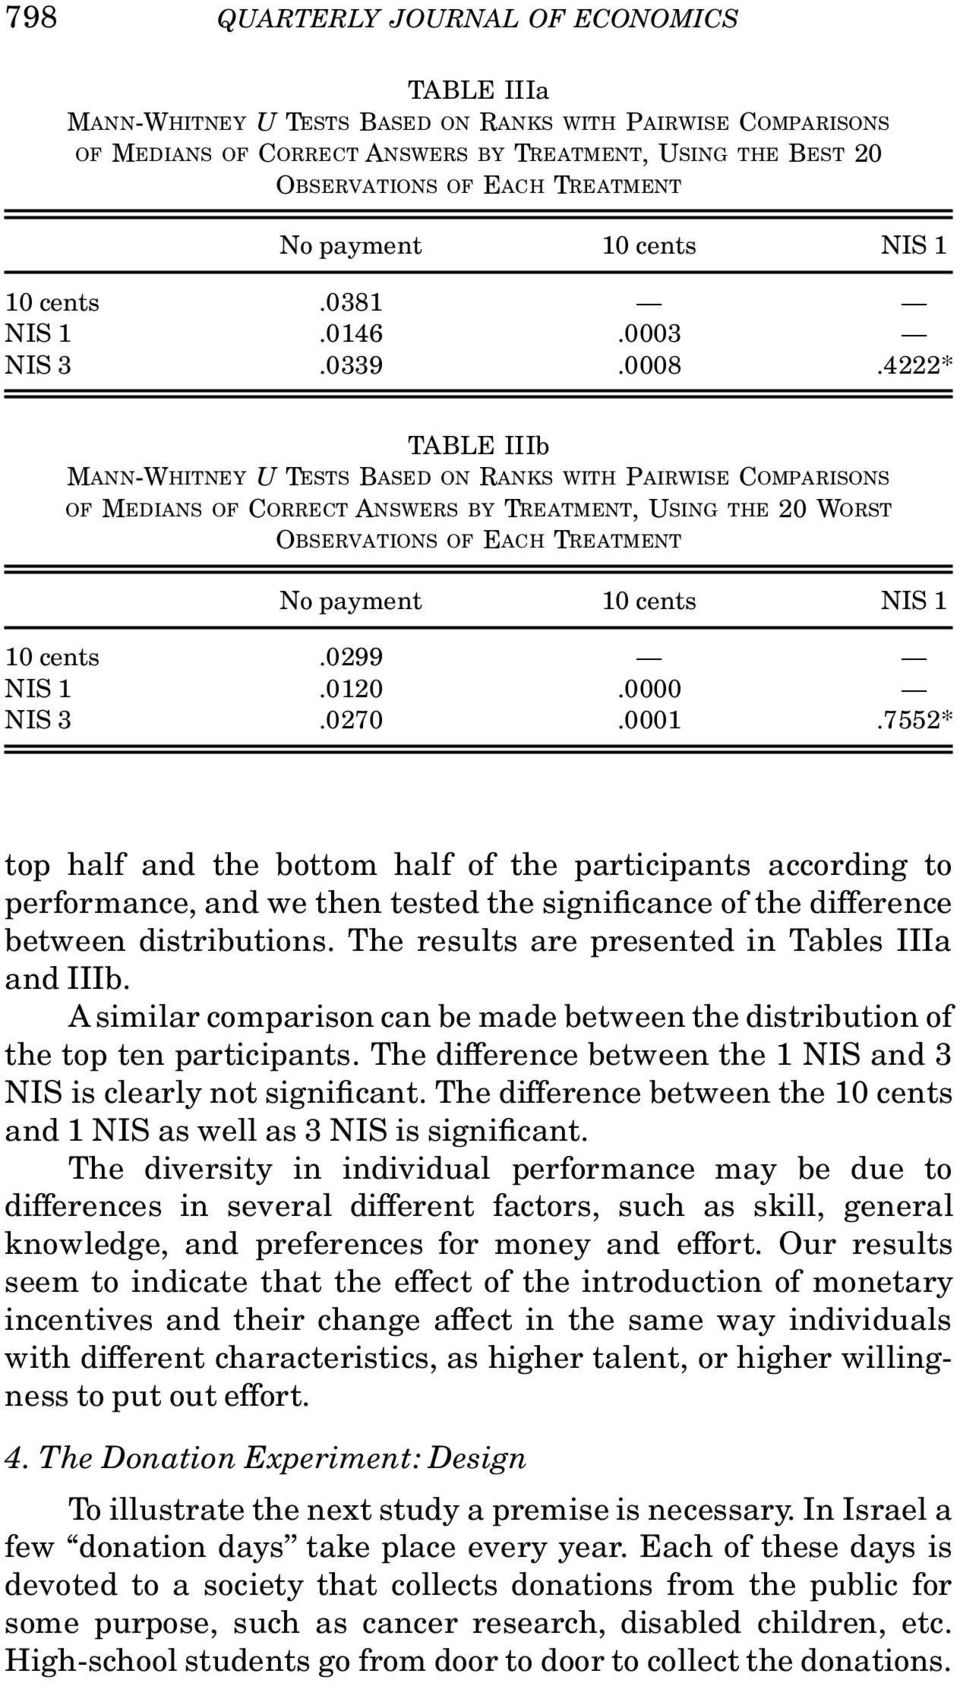 4222* TABLE IIIb MANN-WHITNEY U TESTS BASED ON RANKS WITH PAIRWISE COMPARISONS OF MEDIANS OF CORRECT ANSWERS BY TREATMENT, USING THE 20 WORST OBSERVATIONS OF EACH TREATMENT No payment 10 cents NIS 1